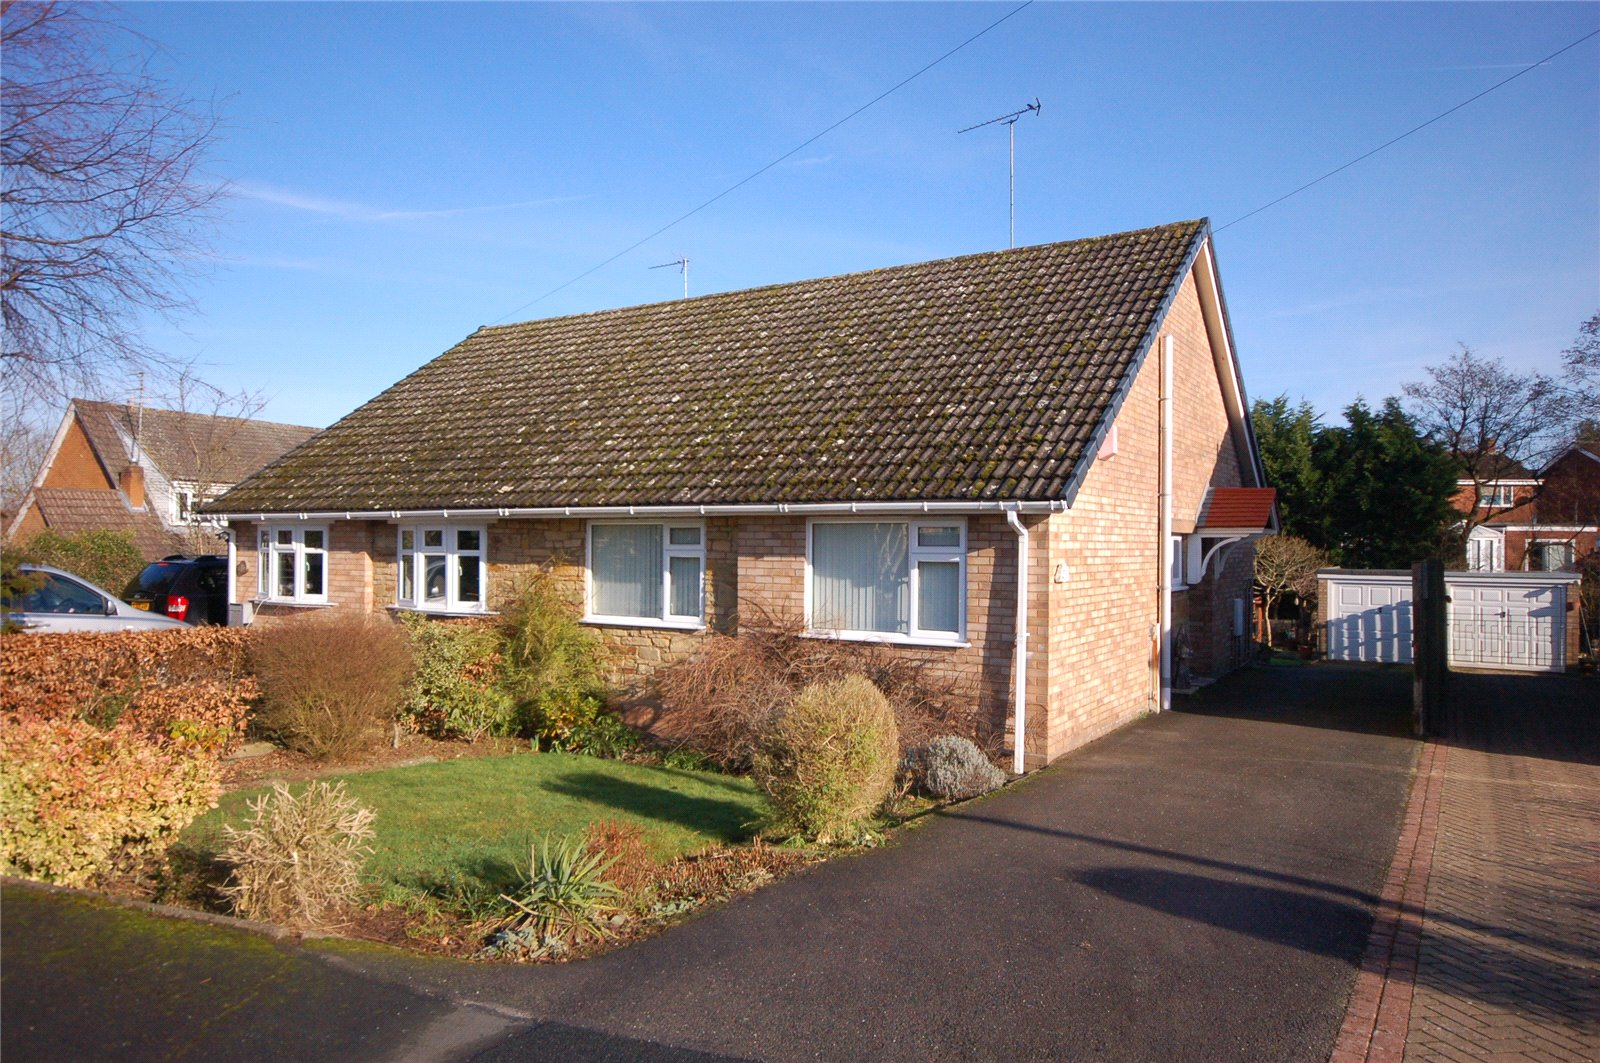 2 Bedrooms Semi Detached Bungalow for sale in 17 Greenleys Crescent, Alveley, Bridgnorth, Shropshire, WV15